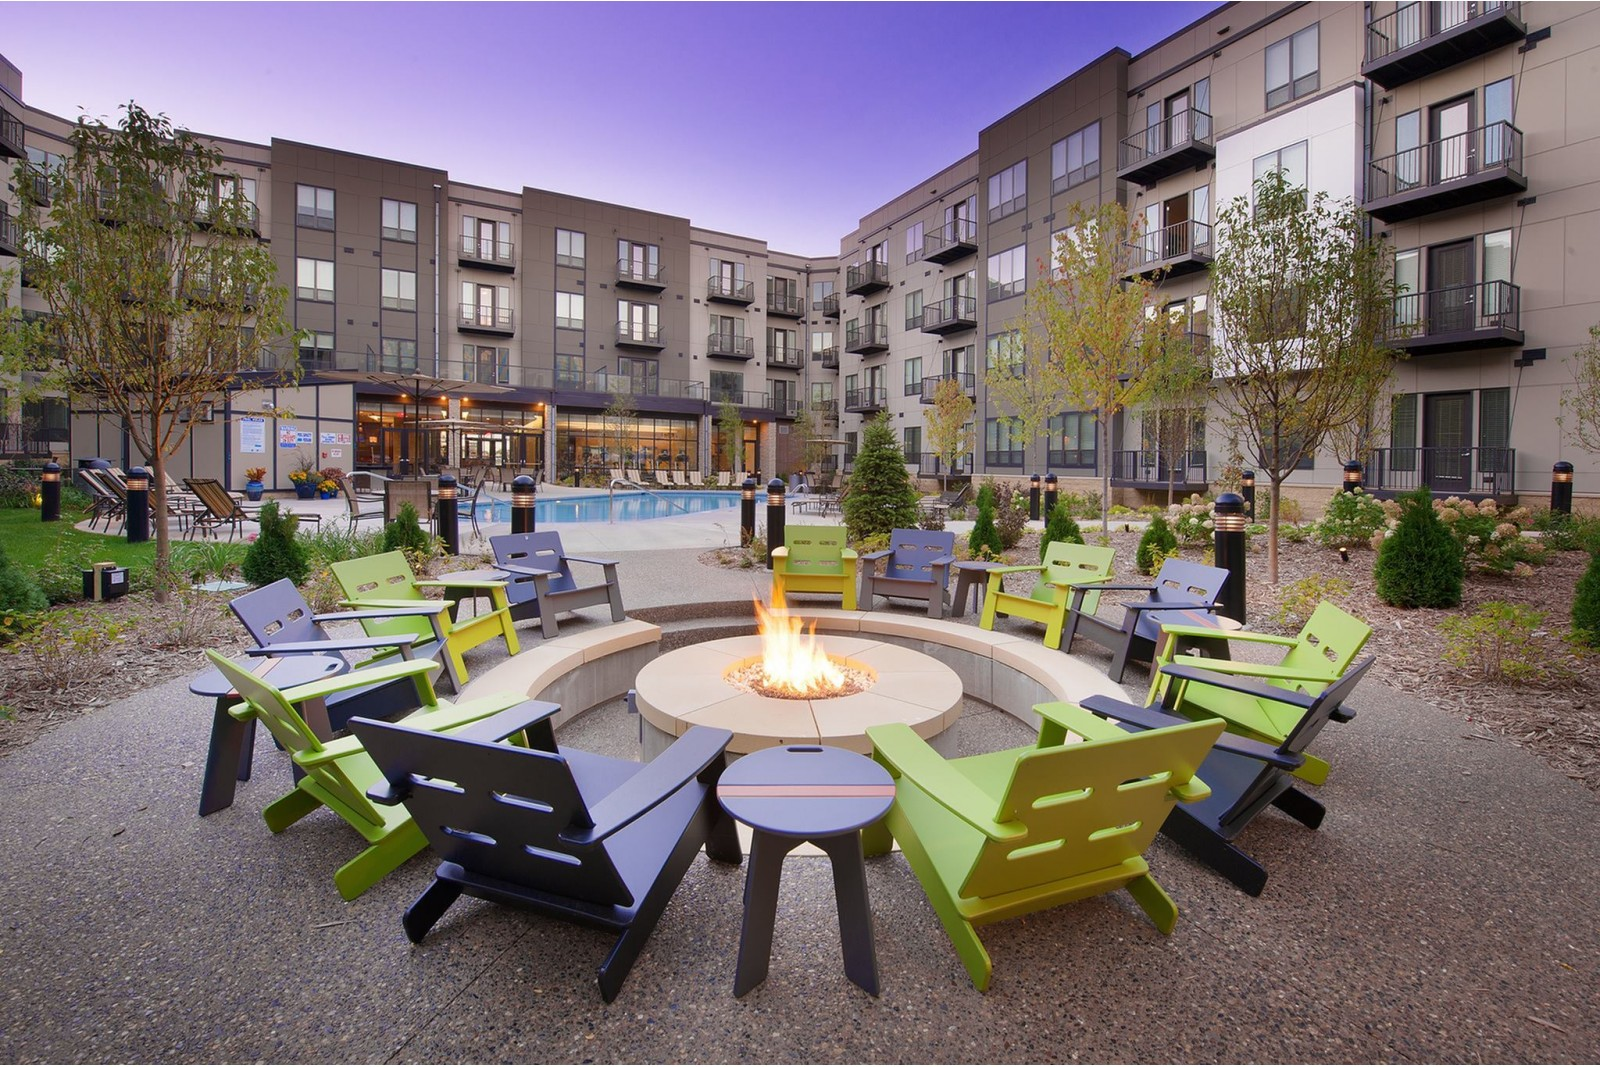 Weidner Apartment Homes with Alaska invests in homeless solutions